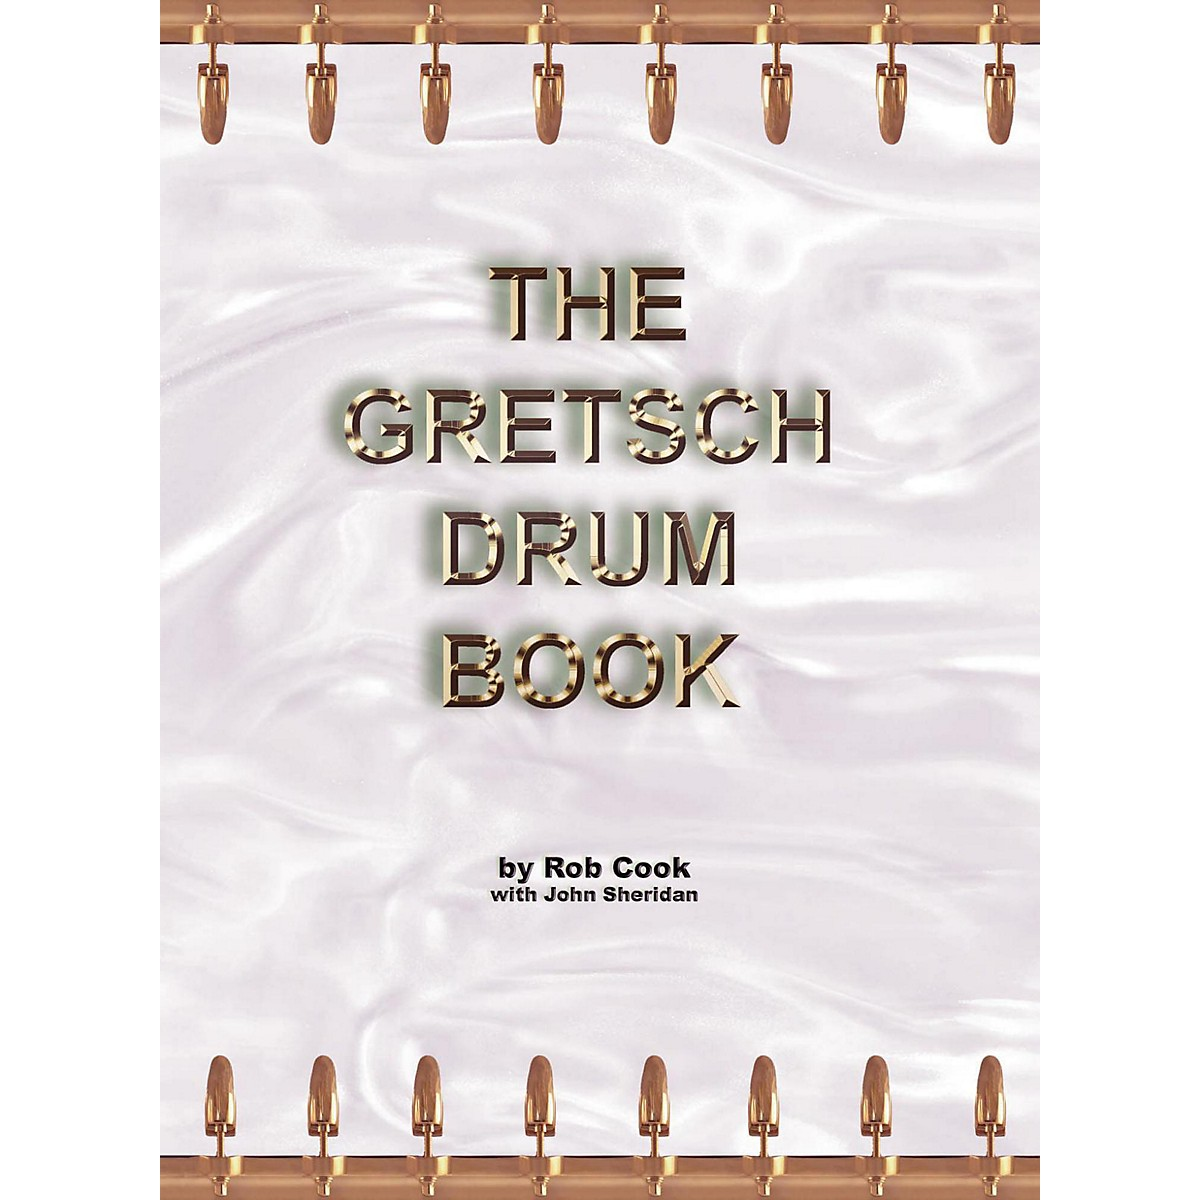 Hal Leonard The Gretsch Drum Book